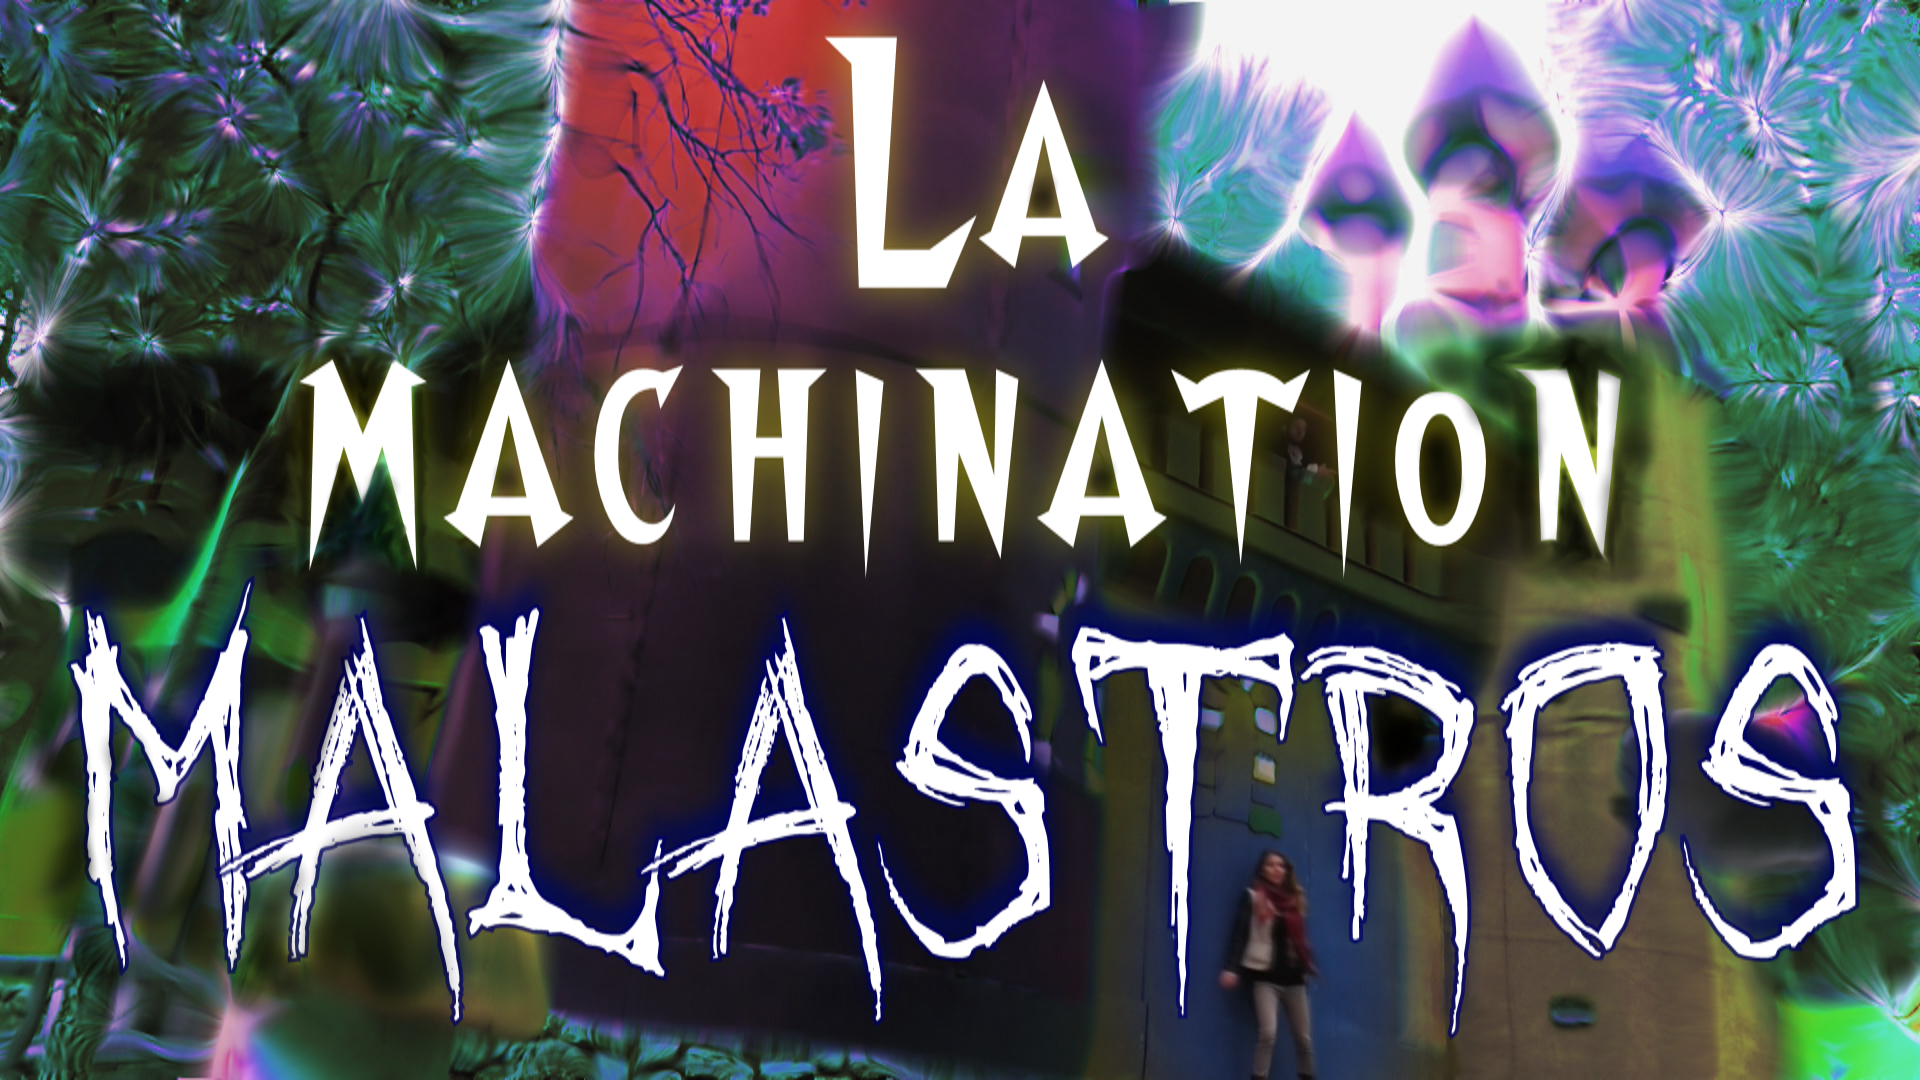 La Machination Malastros